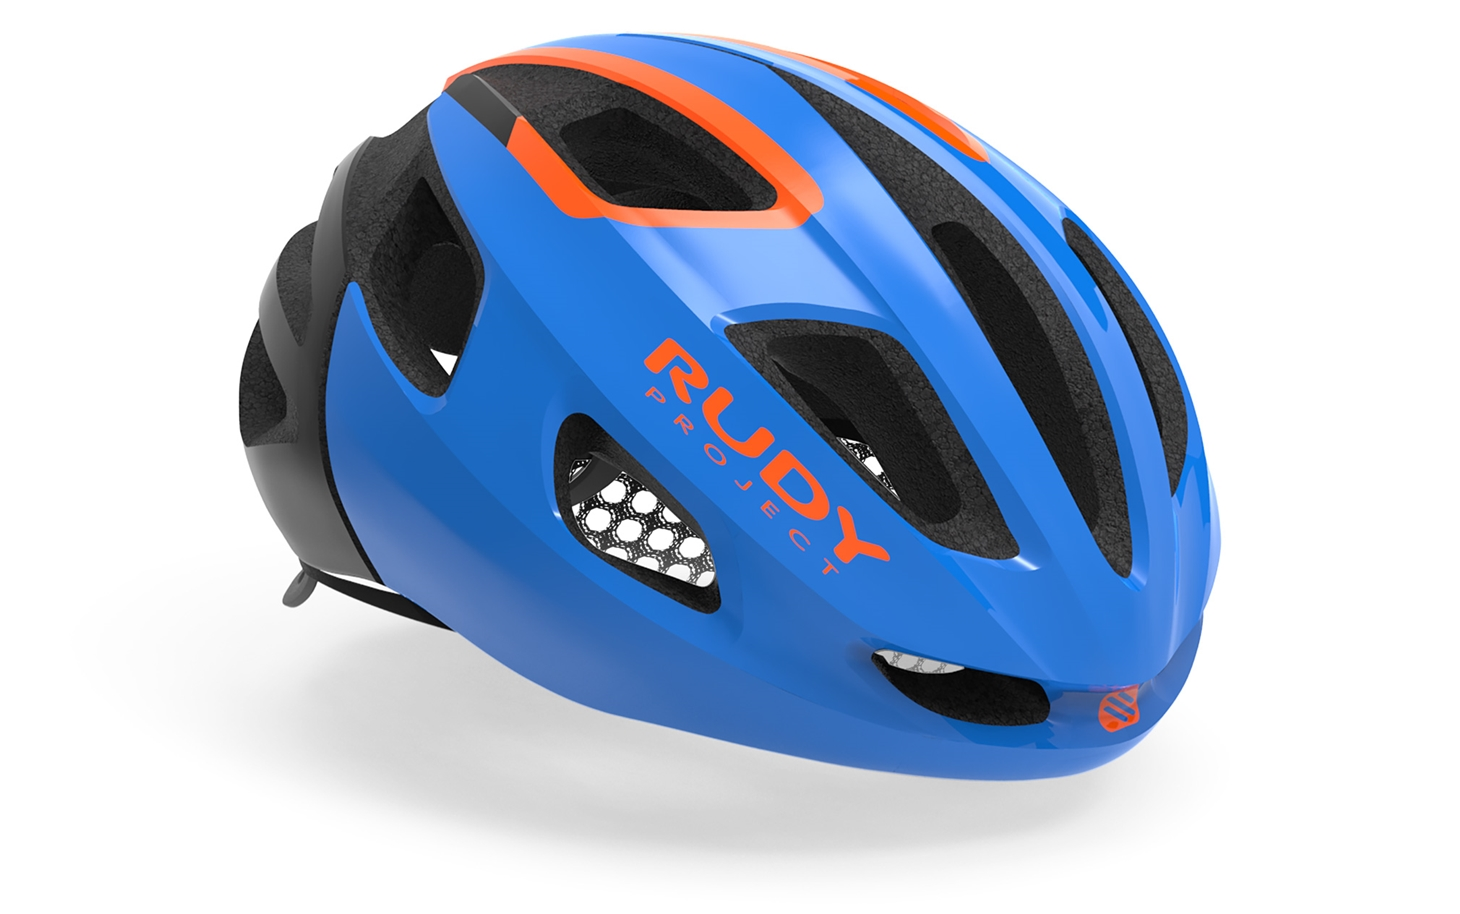 Glasses And Sports Helmets Rudy Project Toolkit Sepeda 11 In 1 Hitam Strym